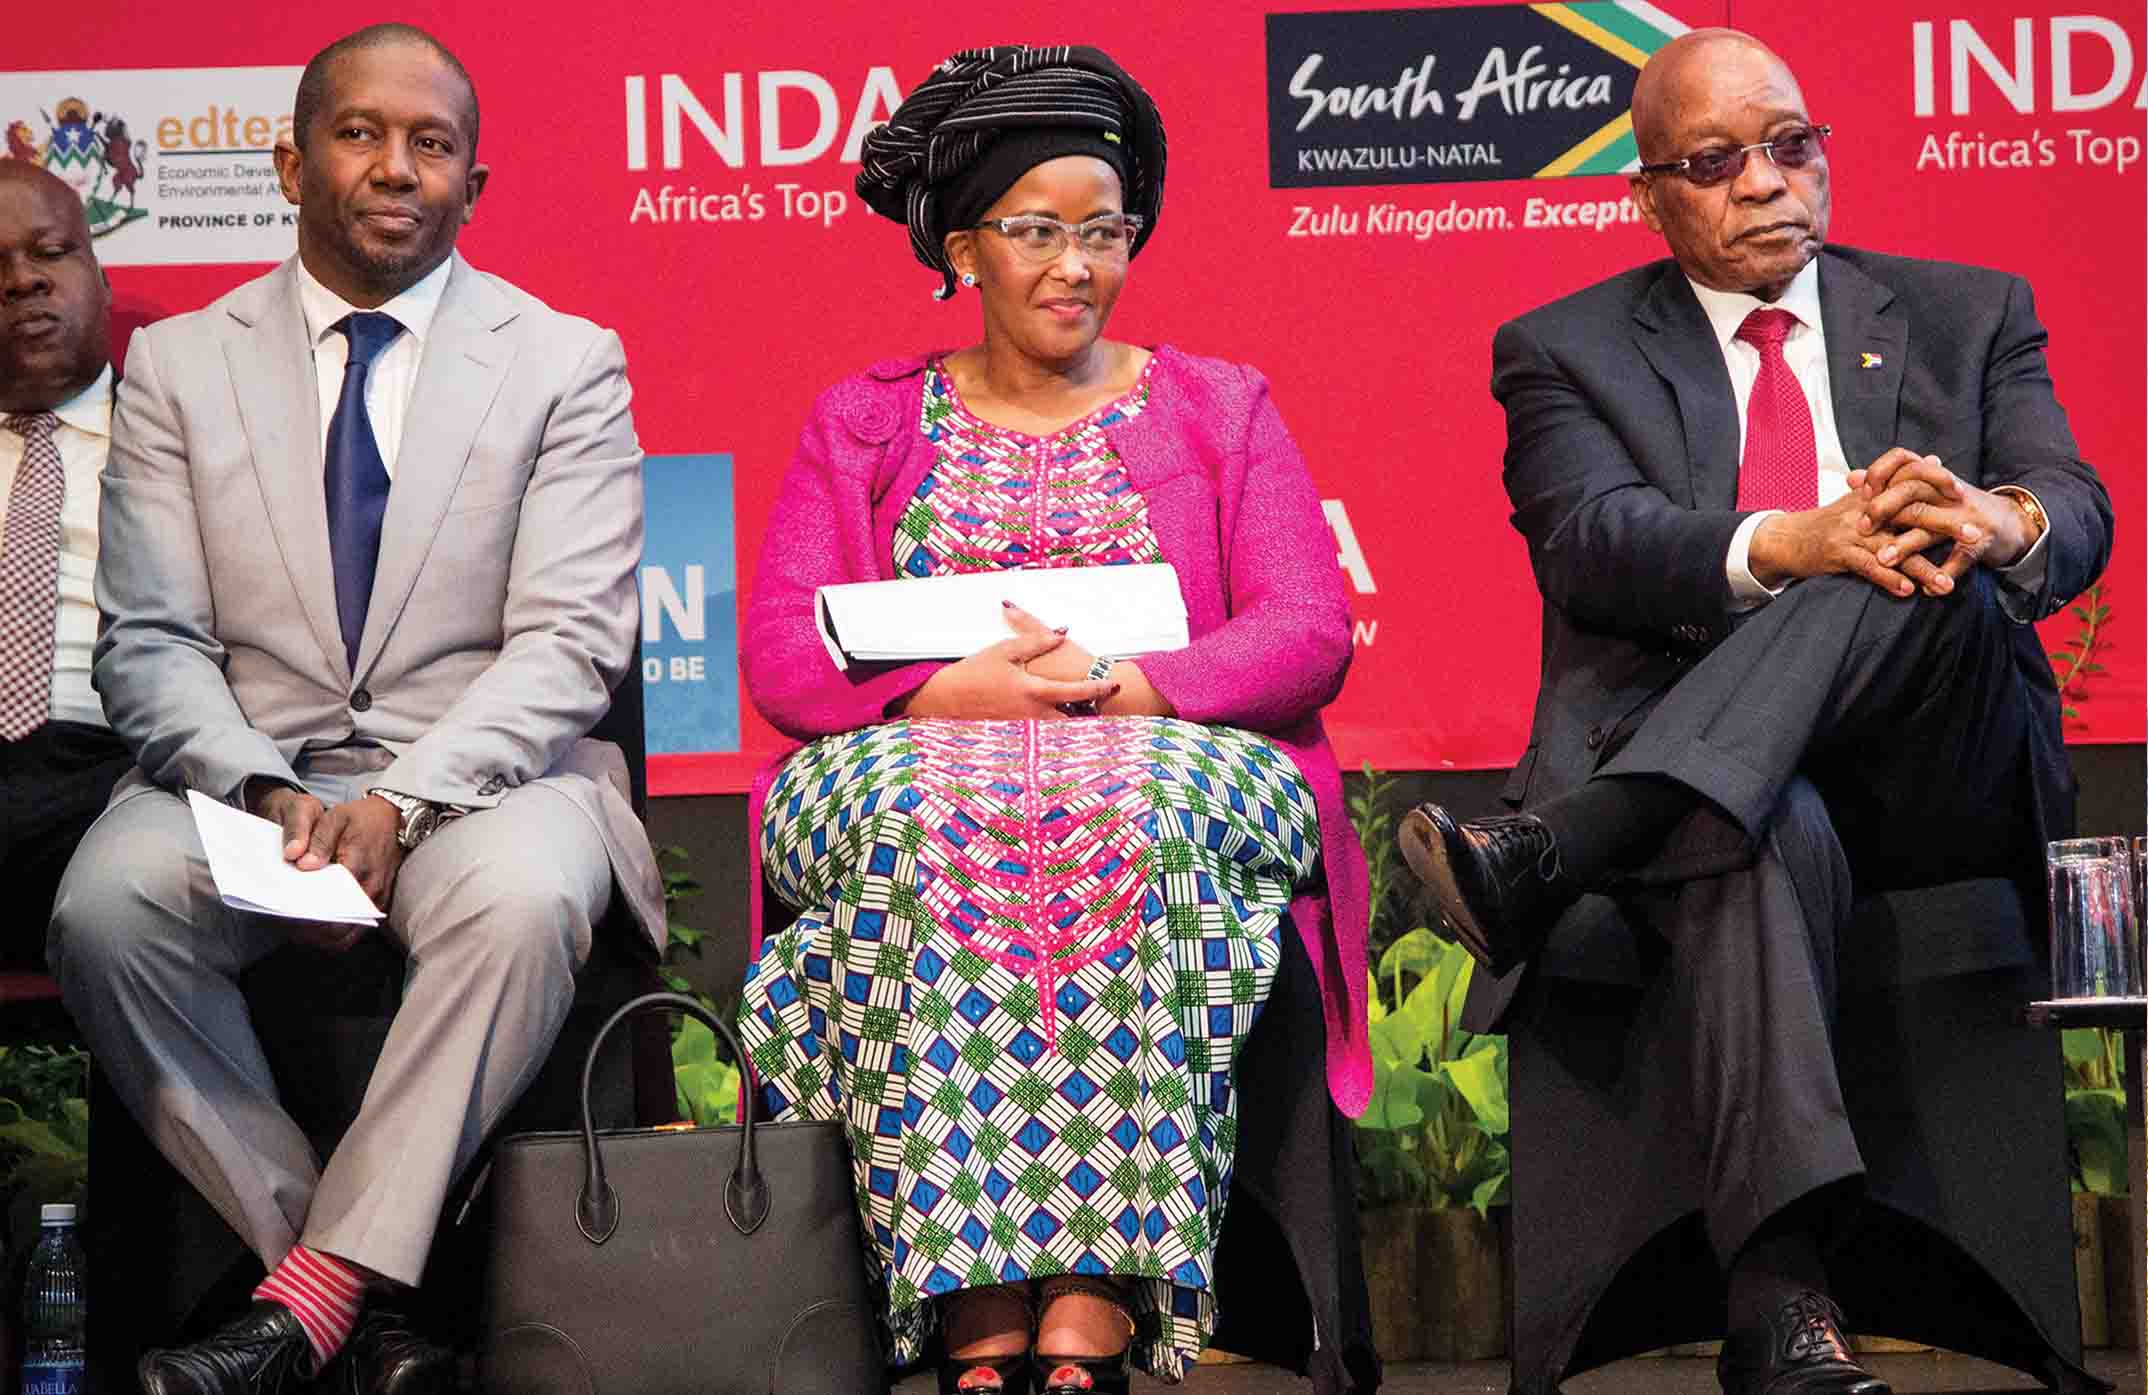 Above: The CEO of South African Tourism Mr Sisa Ntshona, Minister of Tourism Ms Thokozile Xasa and the President of South Africa Mr Jacob Zuma at the Tourism Indaba in Durban, South Africa recently. The platform was used to launch I Do Tourism (IDT) – an initiative that seeks to remind South Africans of the importance of the tourism industry and the role they can play as advocates for South Africa and for tourism.